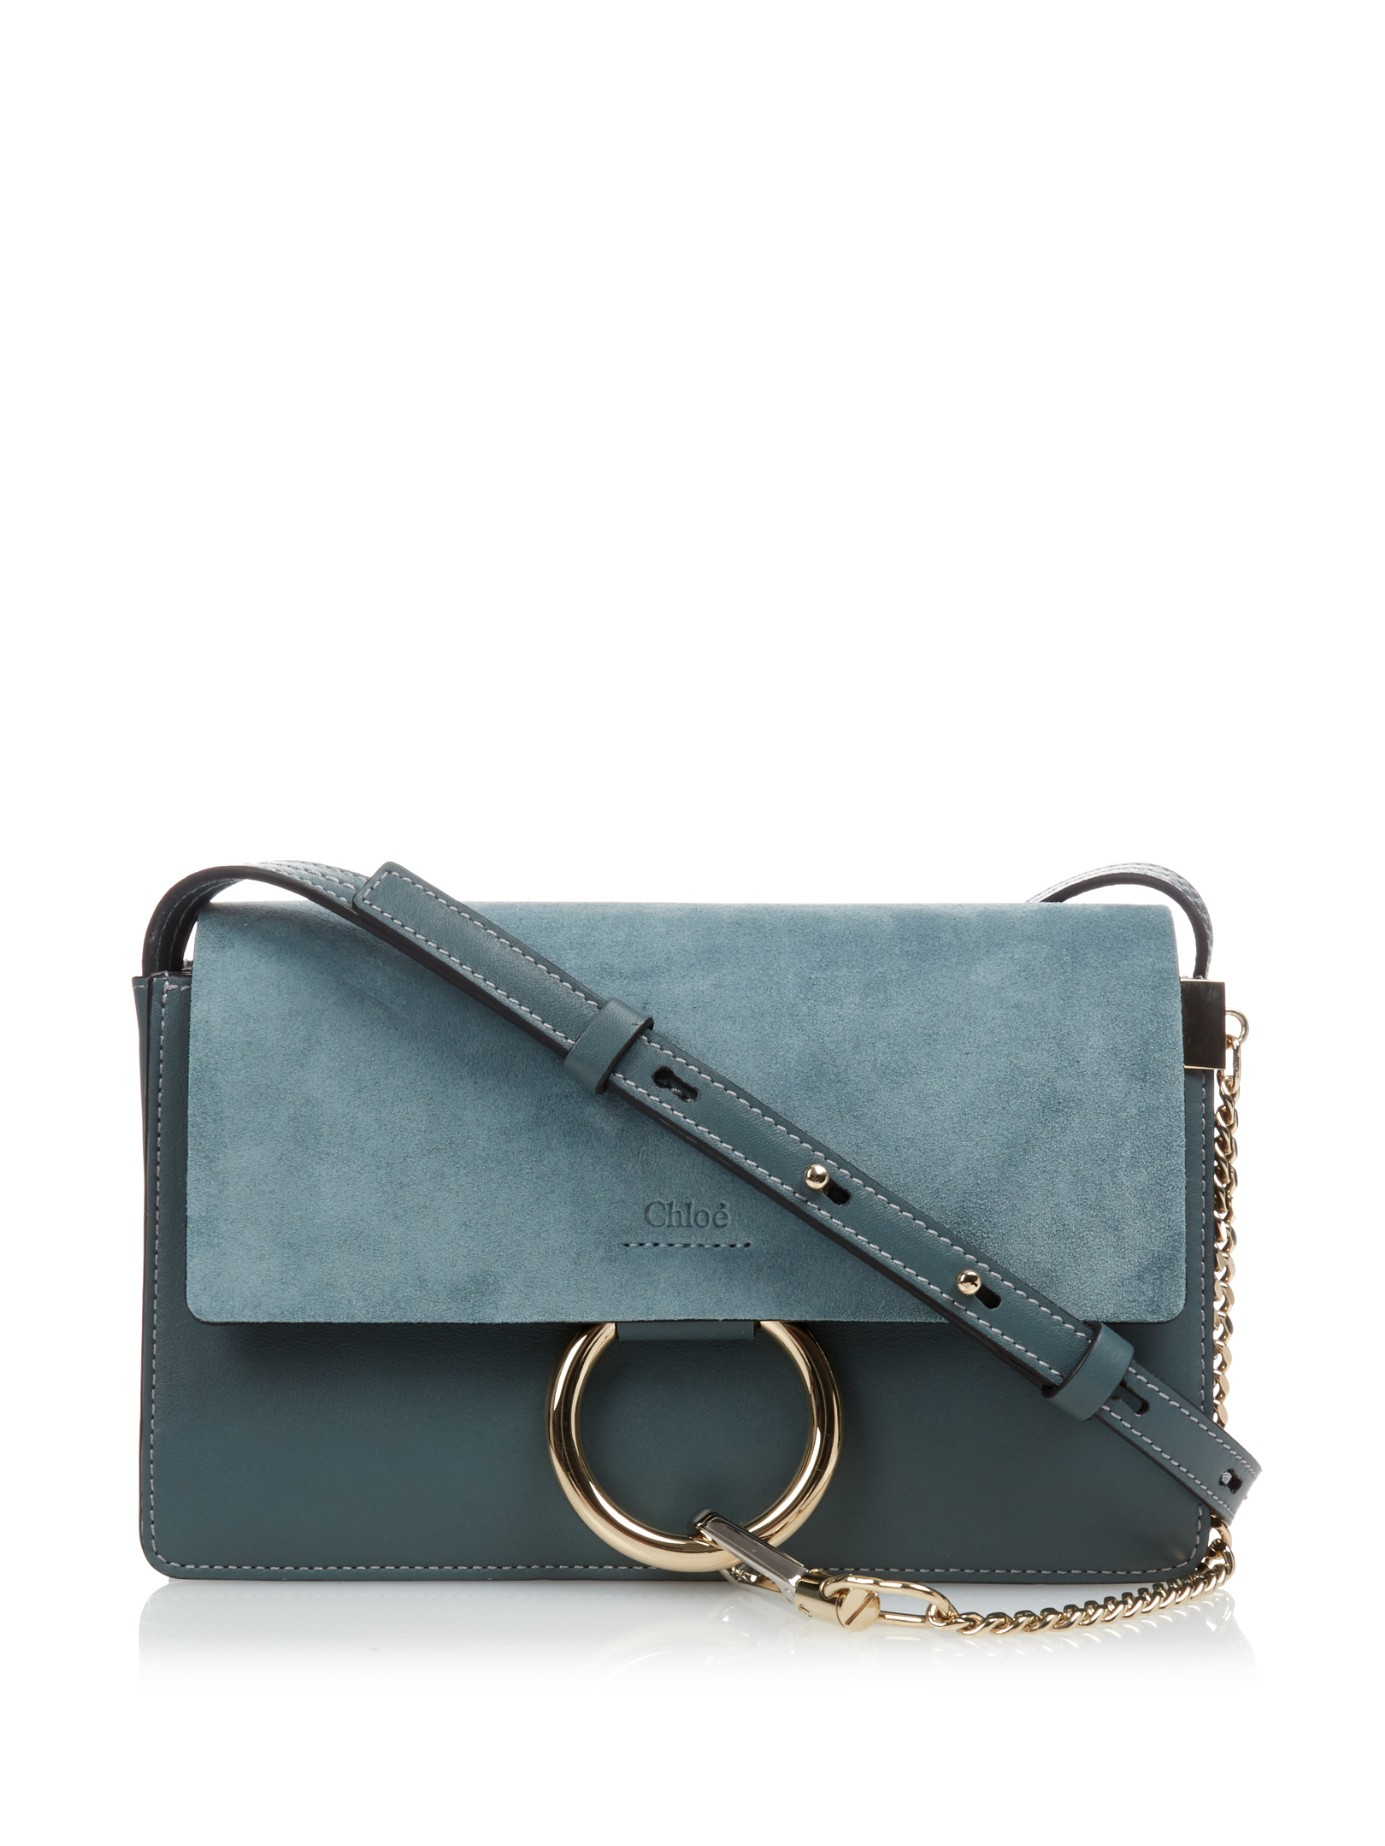 Chlo�� Faye Leather and Suede Cross-Body Bag in Blue | Lyst